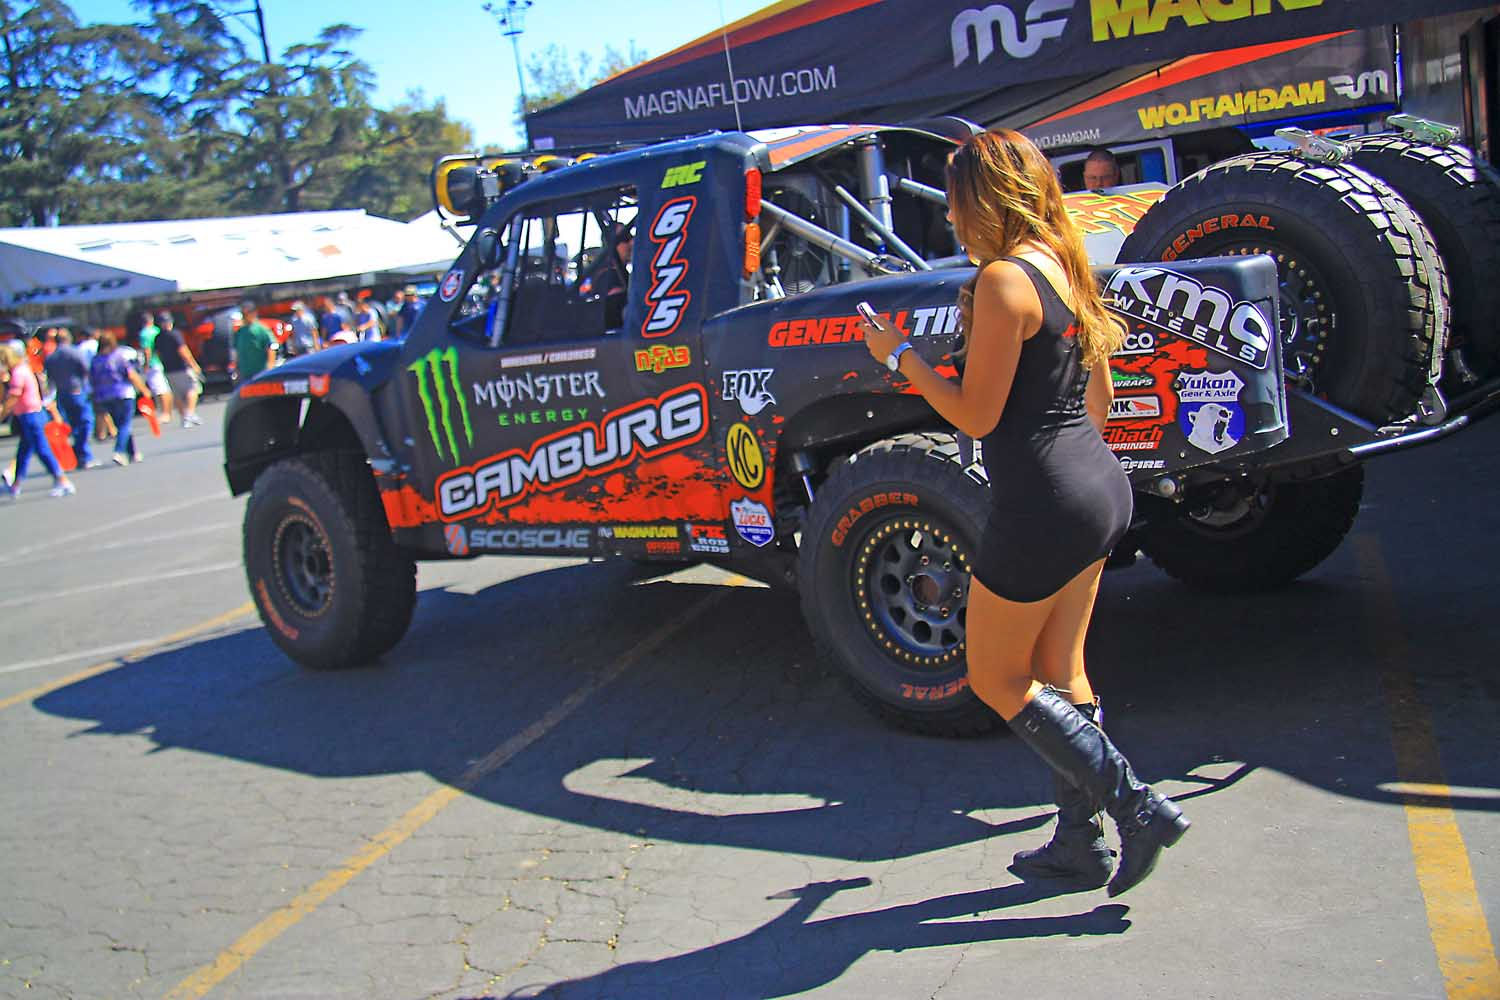 23  Camburg Engineering Kinetik Trophy Truck Photo Bomb